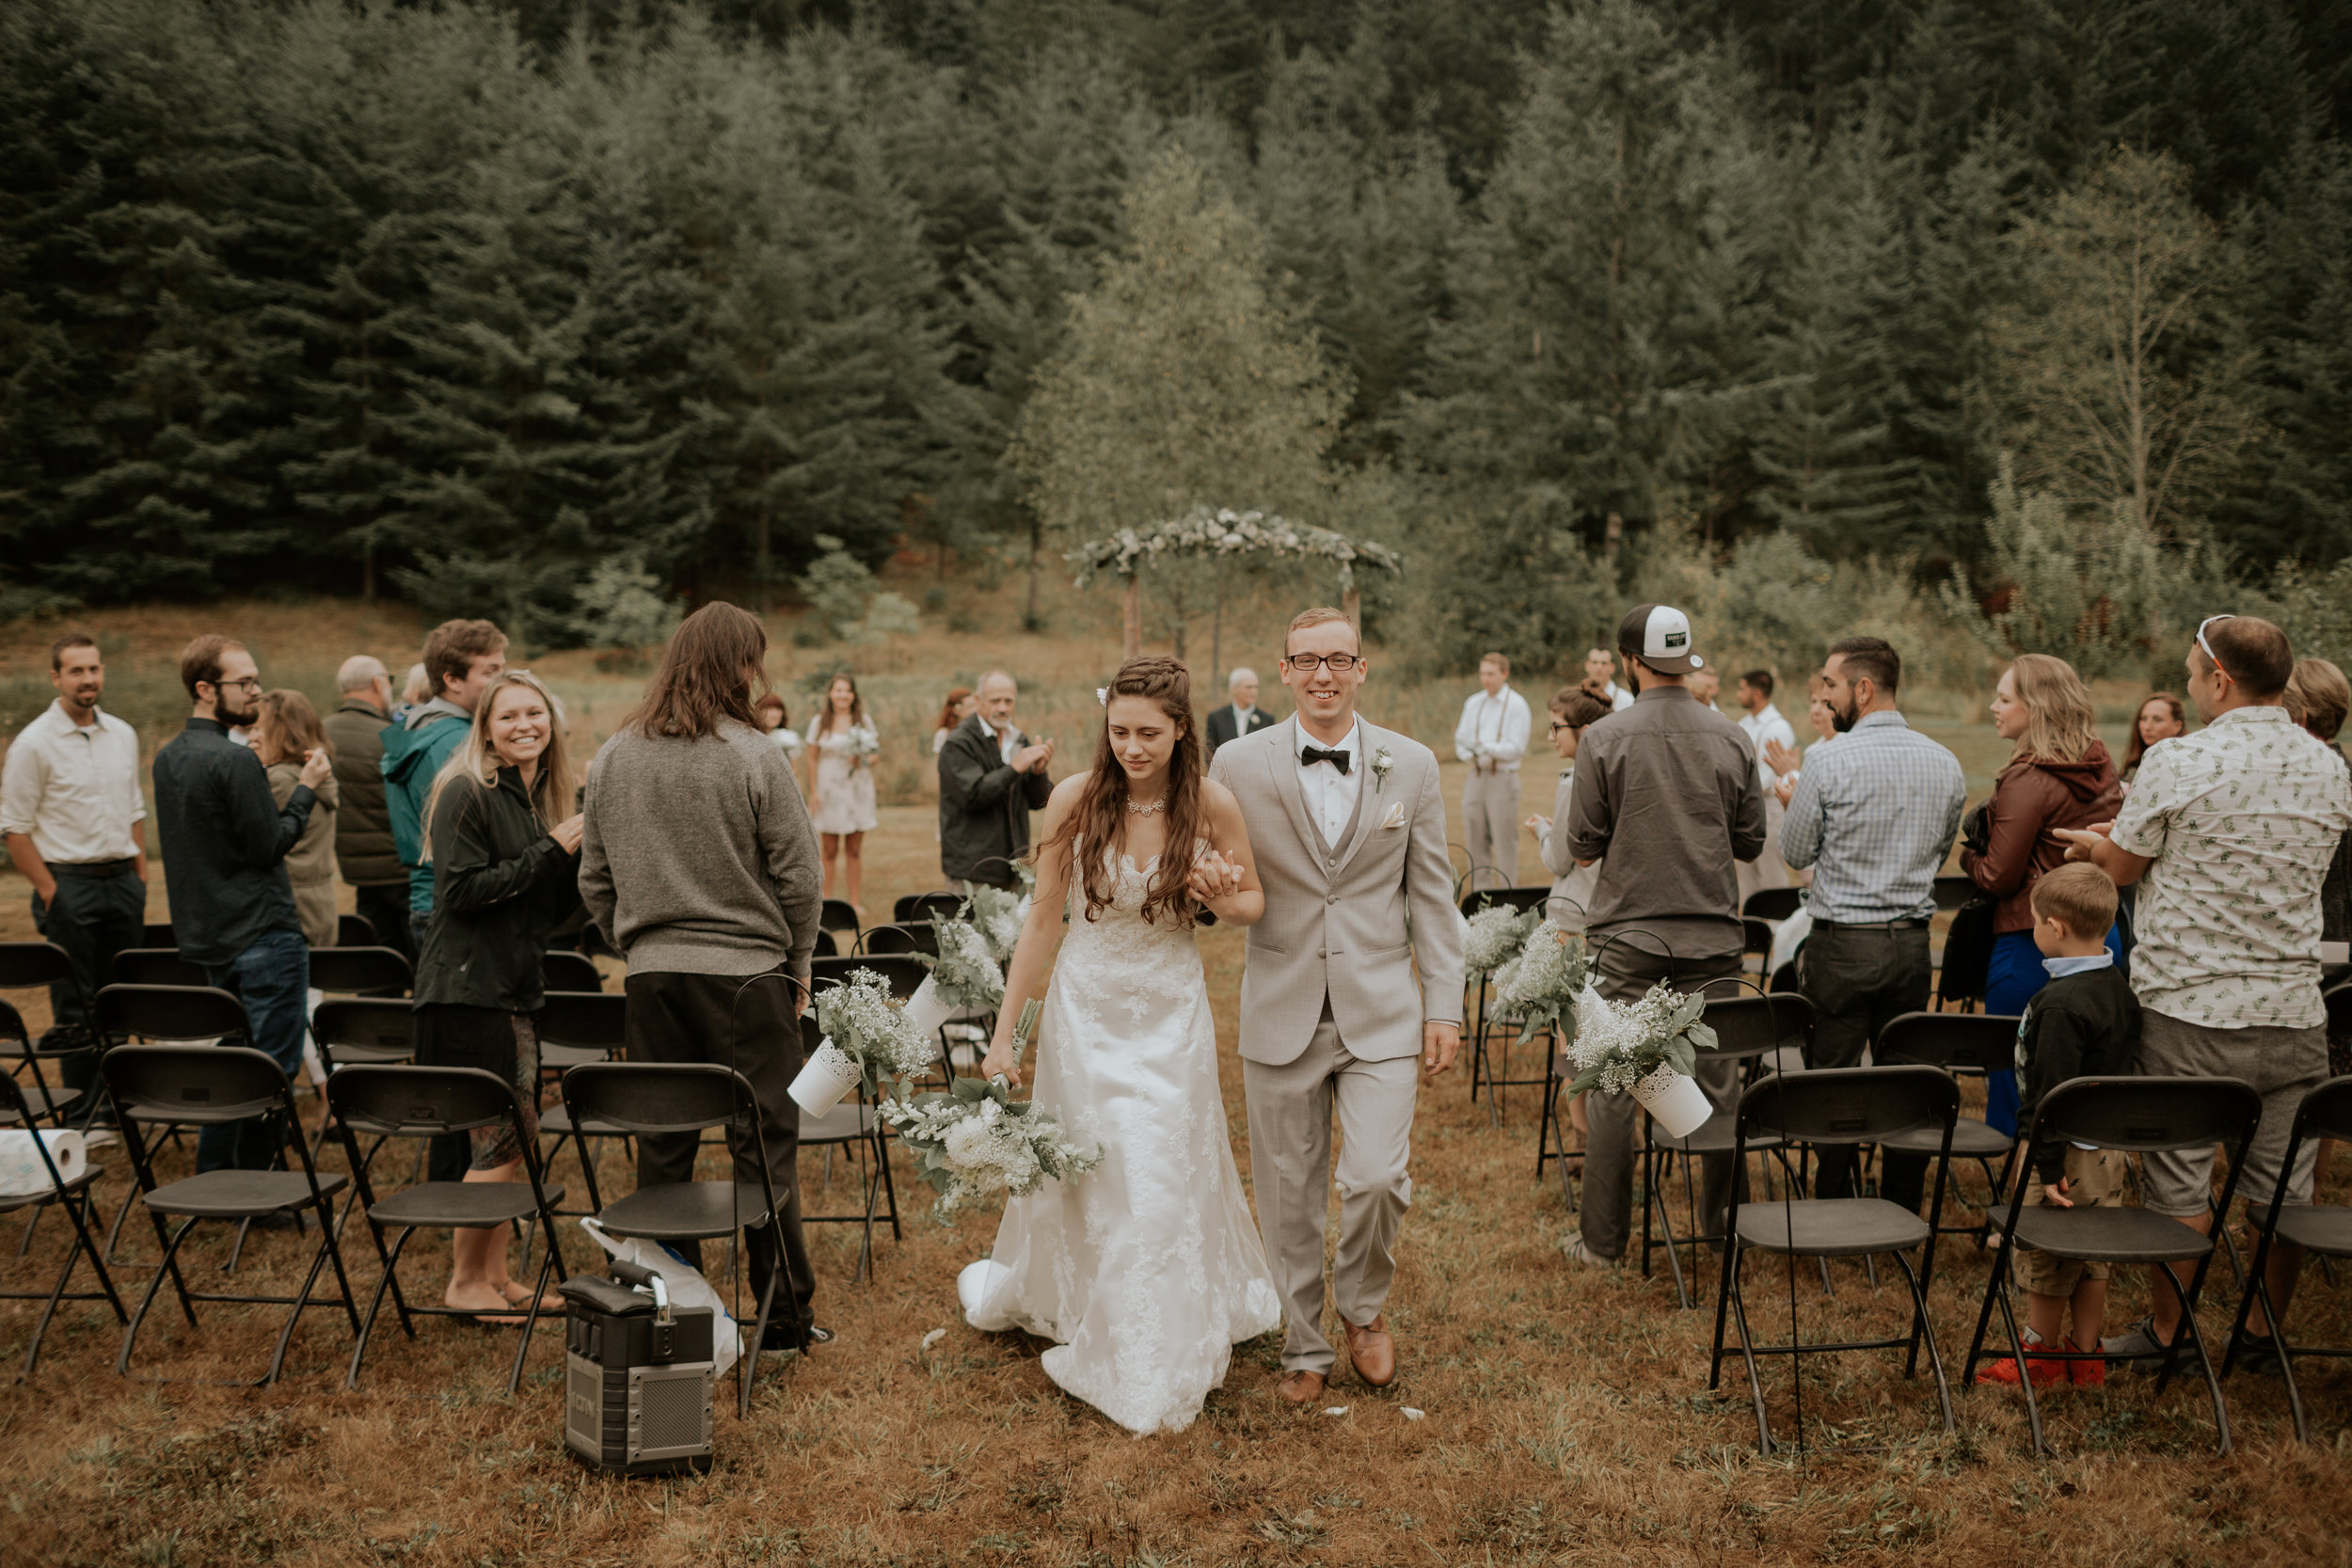 Port-Angeles-elopement-wedding-pnw-olympic-peninsula-photographer-portrait-kayladawnphoto-kayla-dawn-photography-olympic-national-park-112.jpg